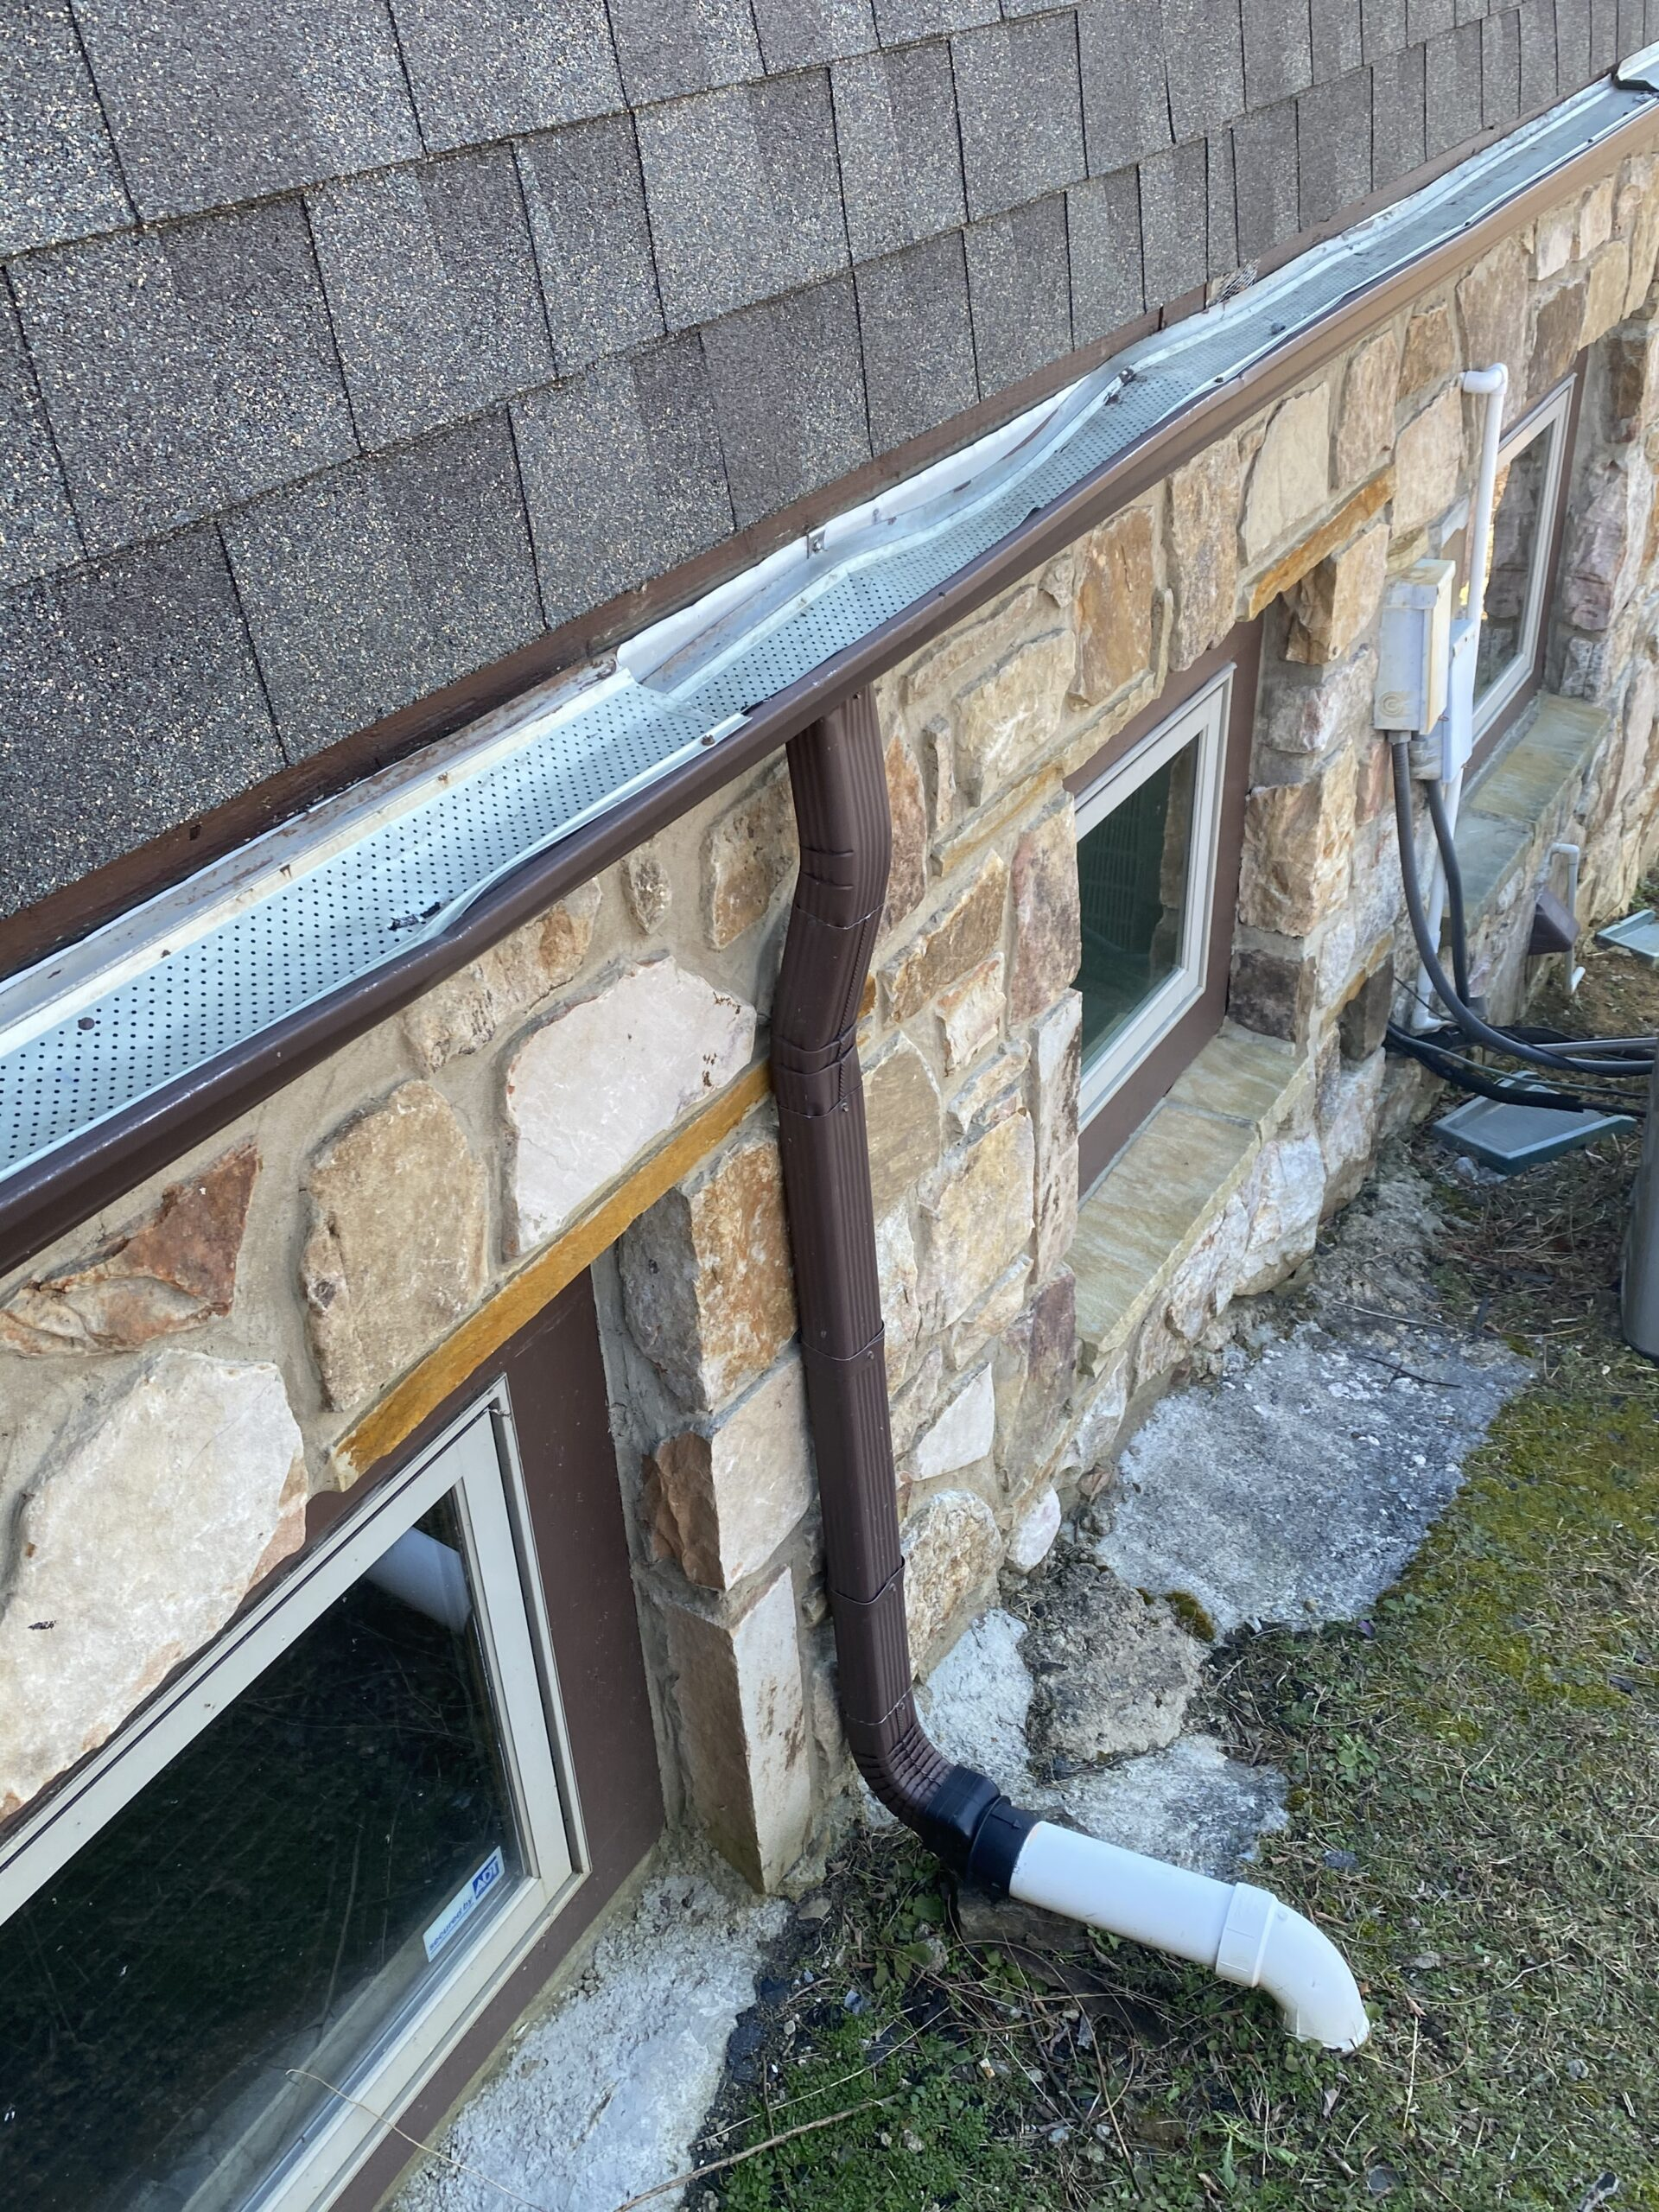 This is a picture of old gutters and gutter guards that need to be replaced